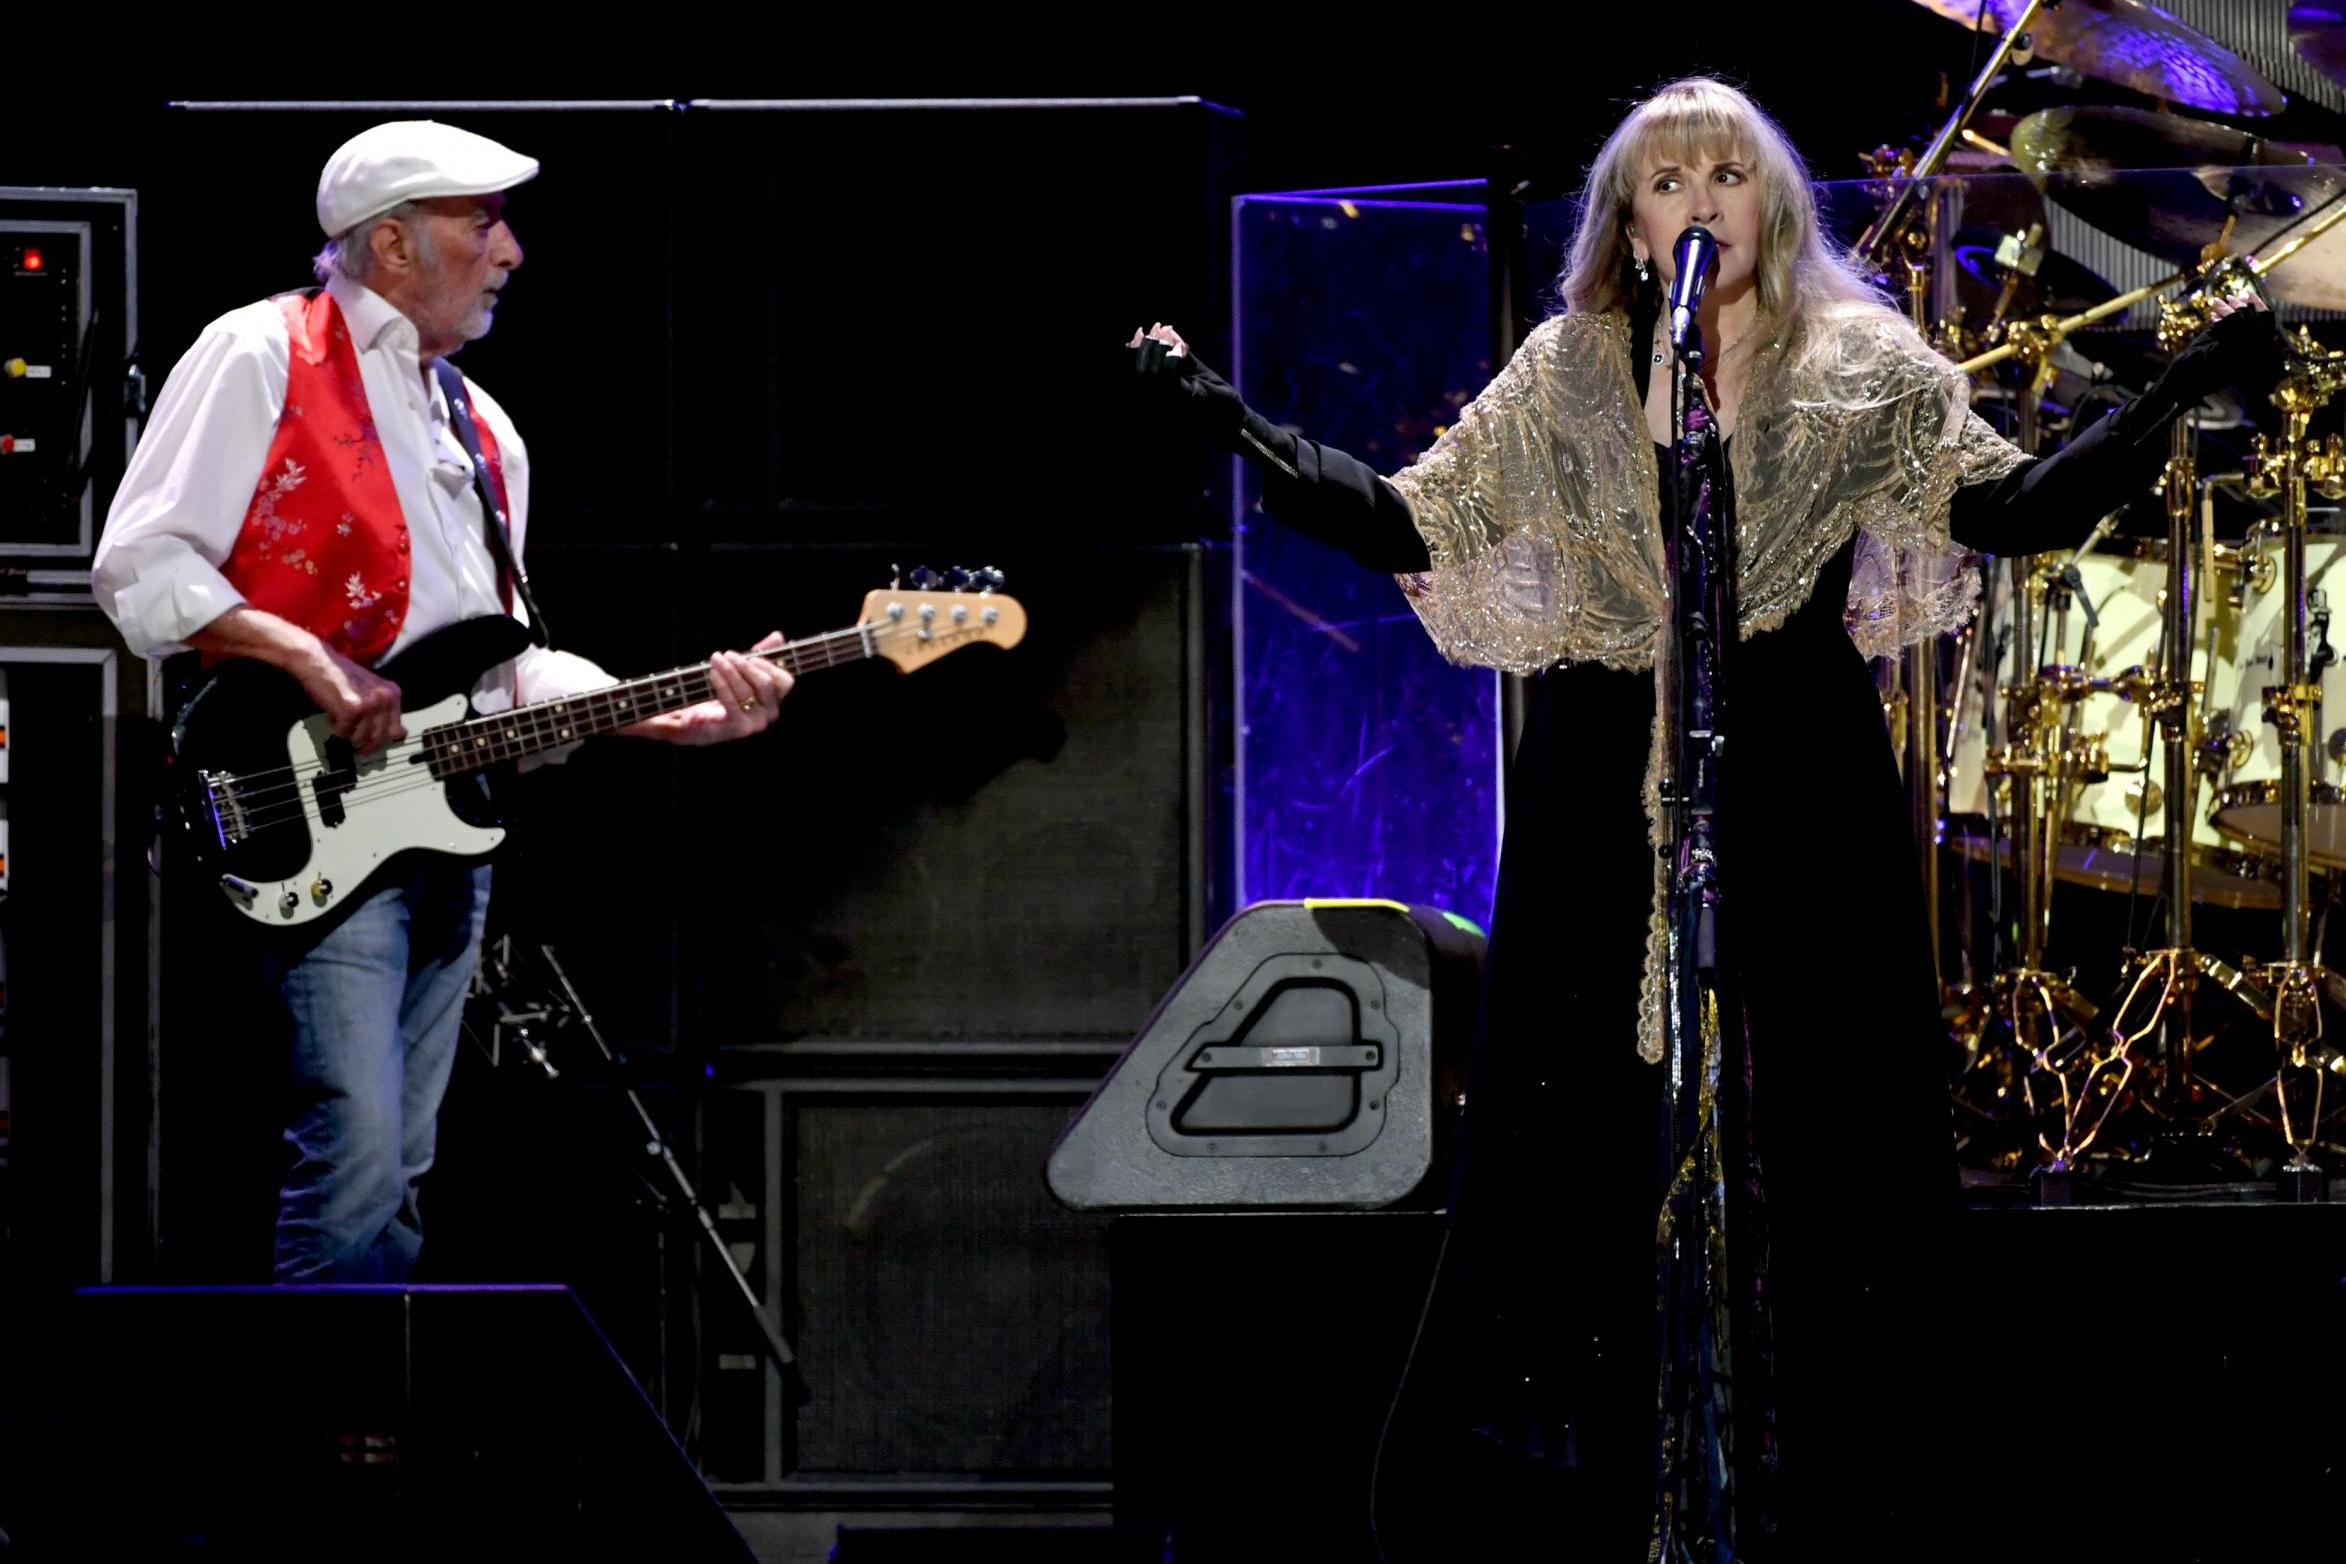 Fleetwood Mac 2019 tour: Band announce extra show at Wembley Stadium